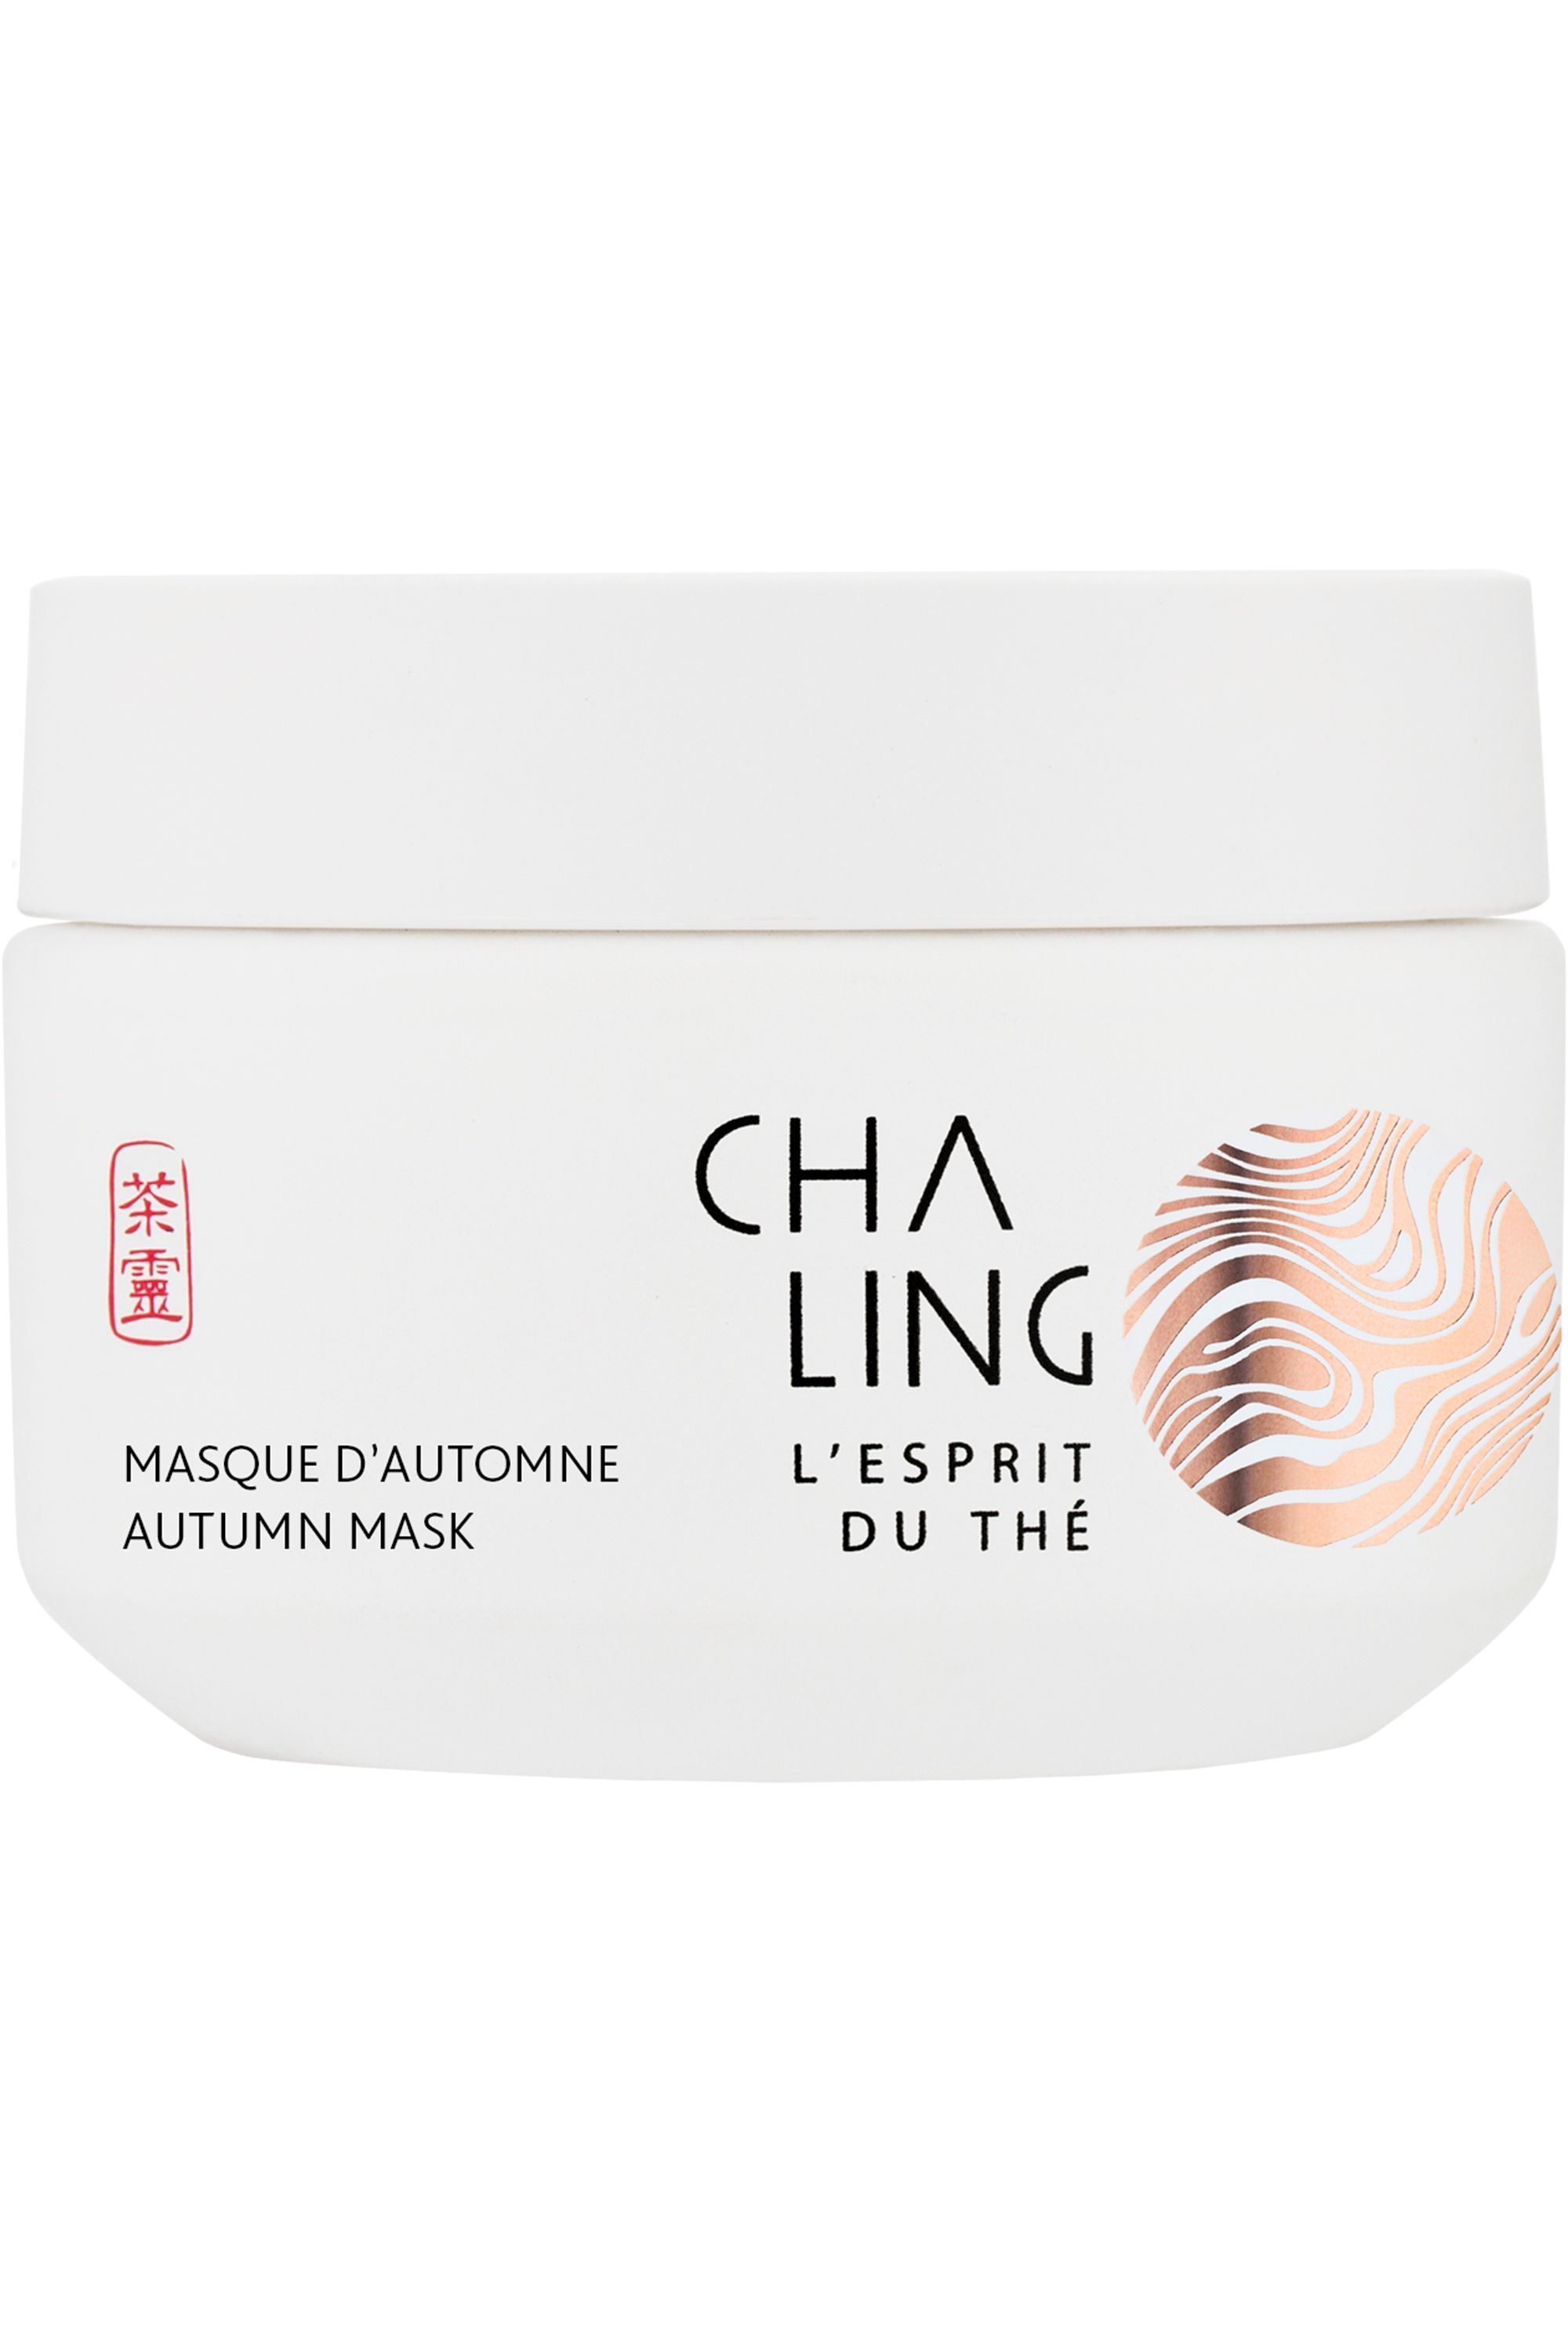 Blissim : Cha Ling - Masque Automne - Masque Automne